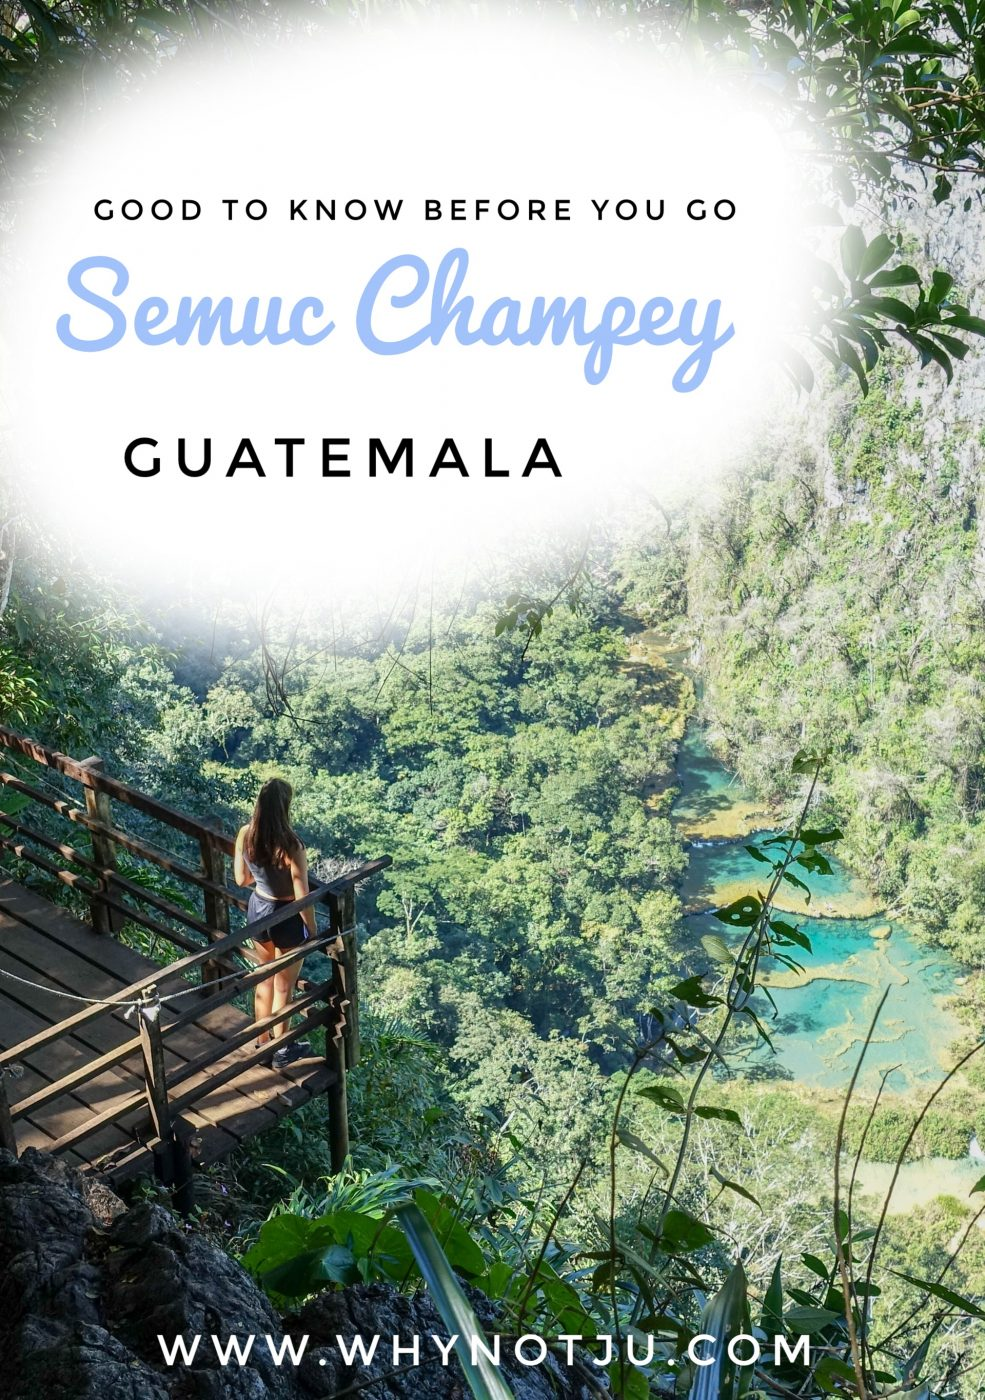 In this article you'll learn about things to do in Semuc Champey, the beautiul National Park in the Guatemalian Jungle. How to get there, what to do there, how to budget ect. #backpacking #visit #Guatemala #adventure #trip #nationalpark #centralamerica #budget #travel #guide